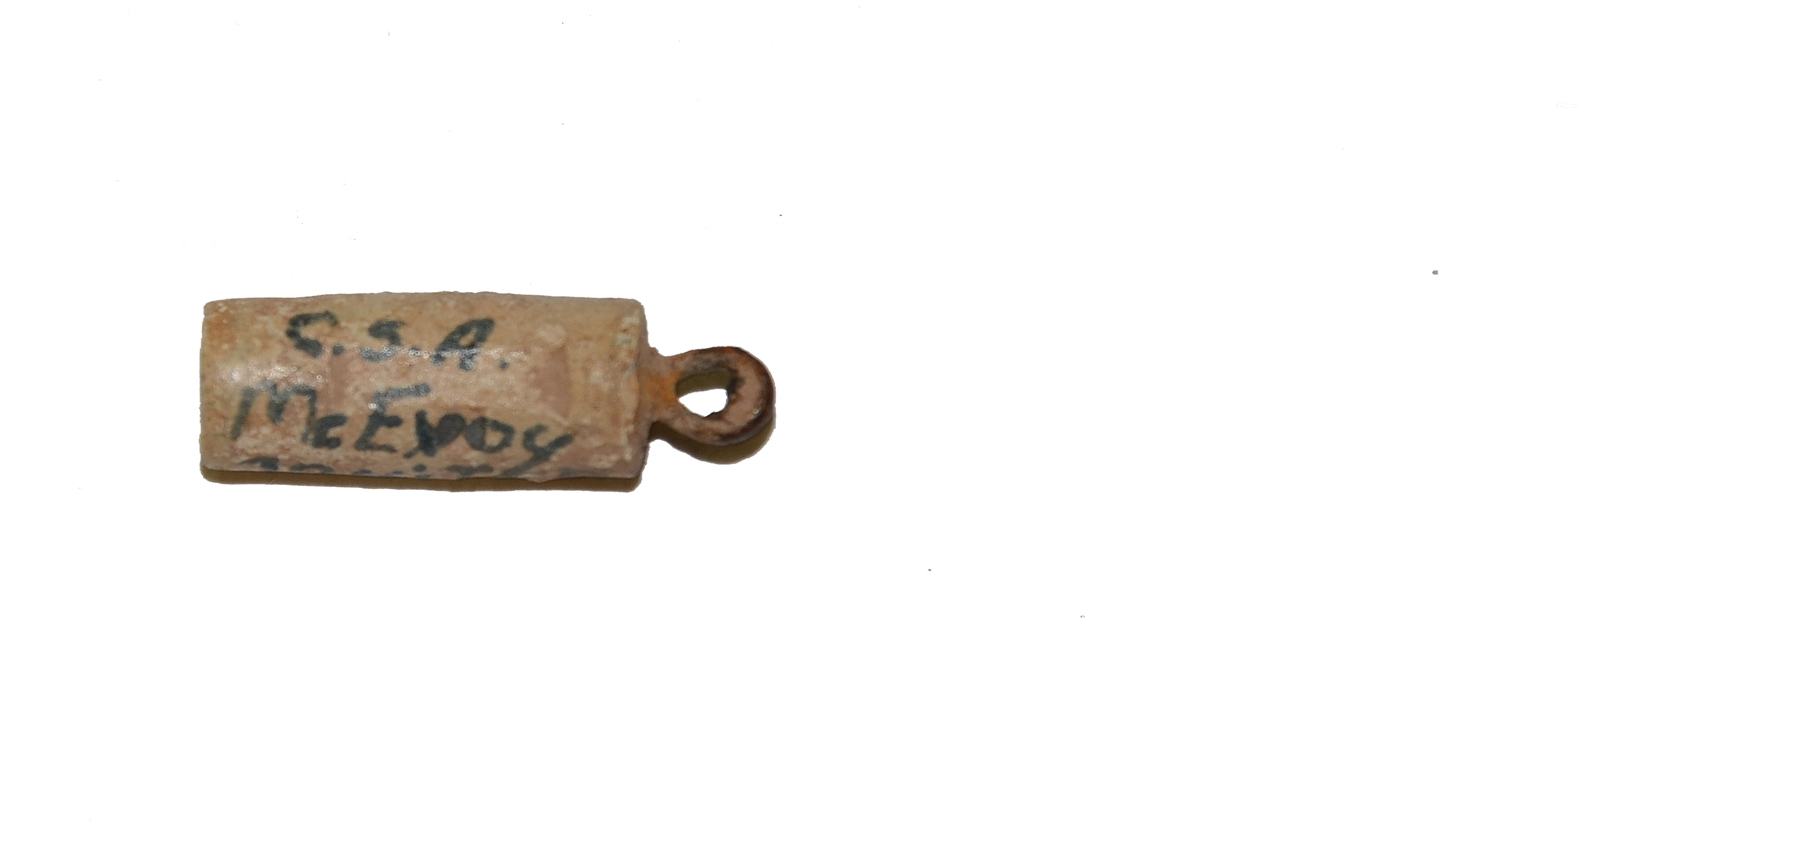 C S  MCEVOY FUSE IGNITER RECOVERED AT GETTYSBURG — Horse Soldier